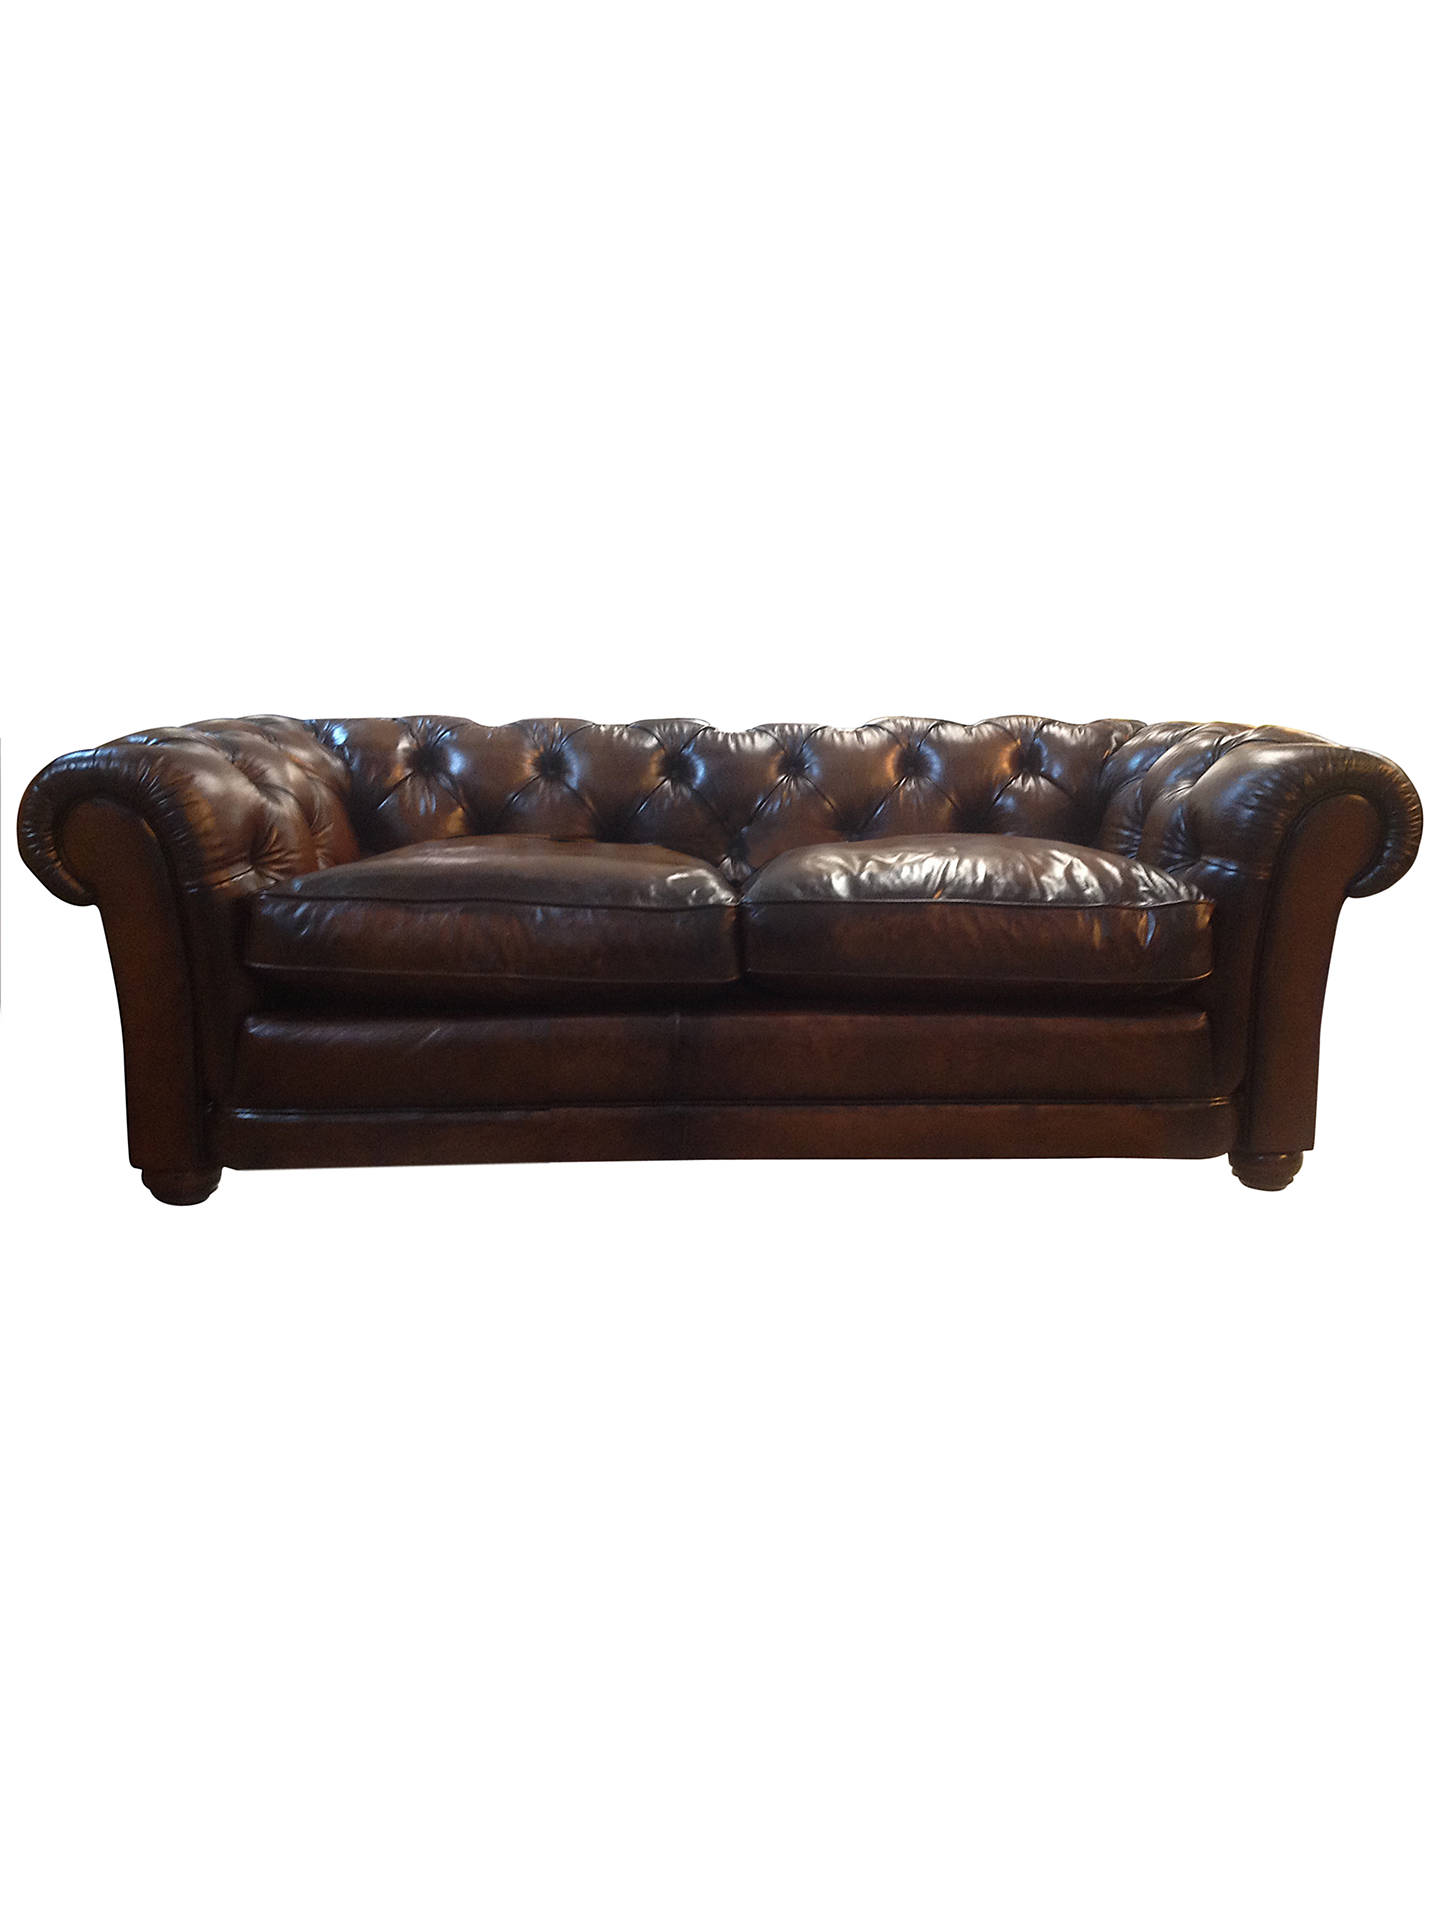 Terrific John Lewis Stanford Grand Leather Sofa Hand Antiqued Buff Forskolin Free Trial Chair Design Images Forskolin Free Trialorg